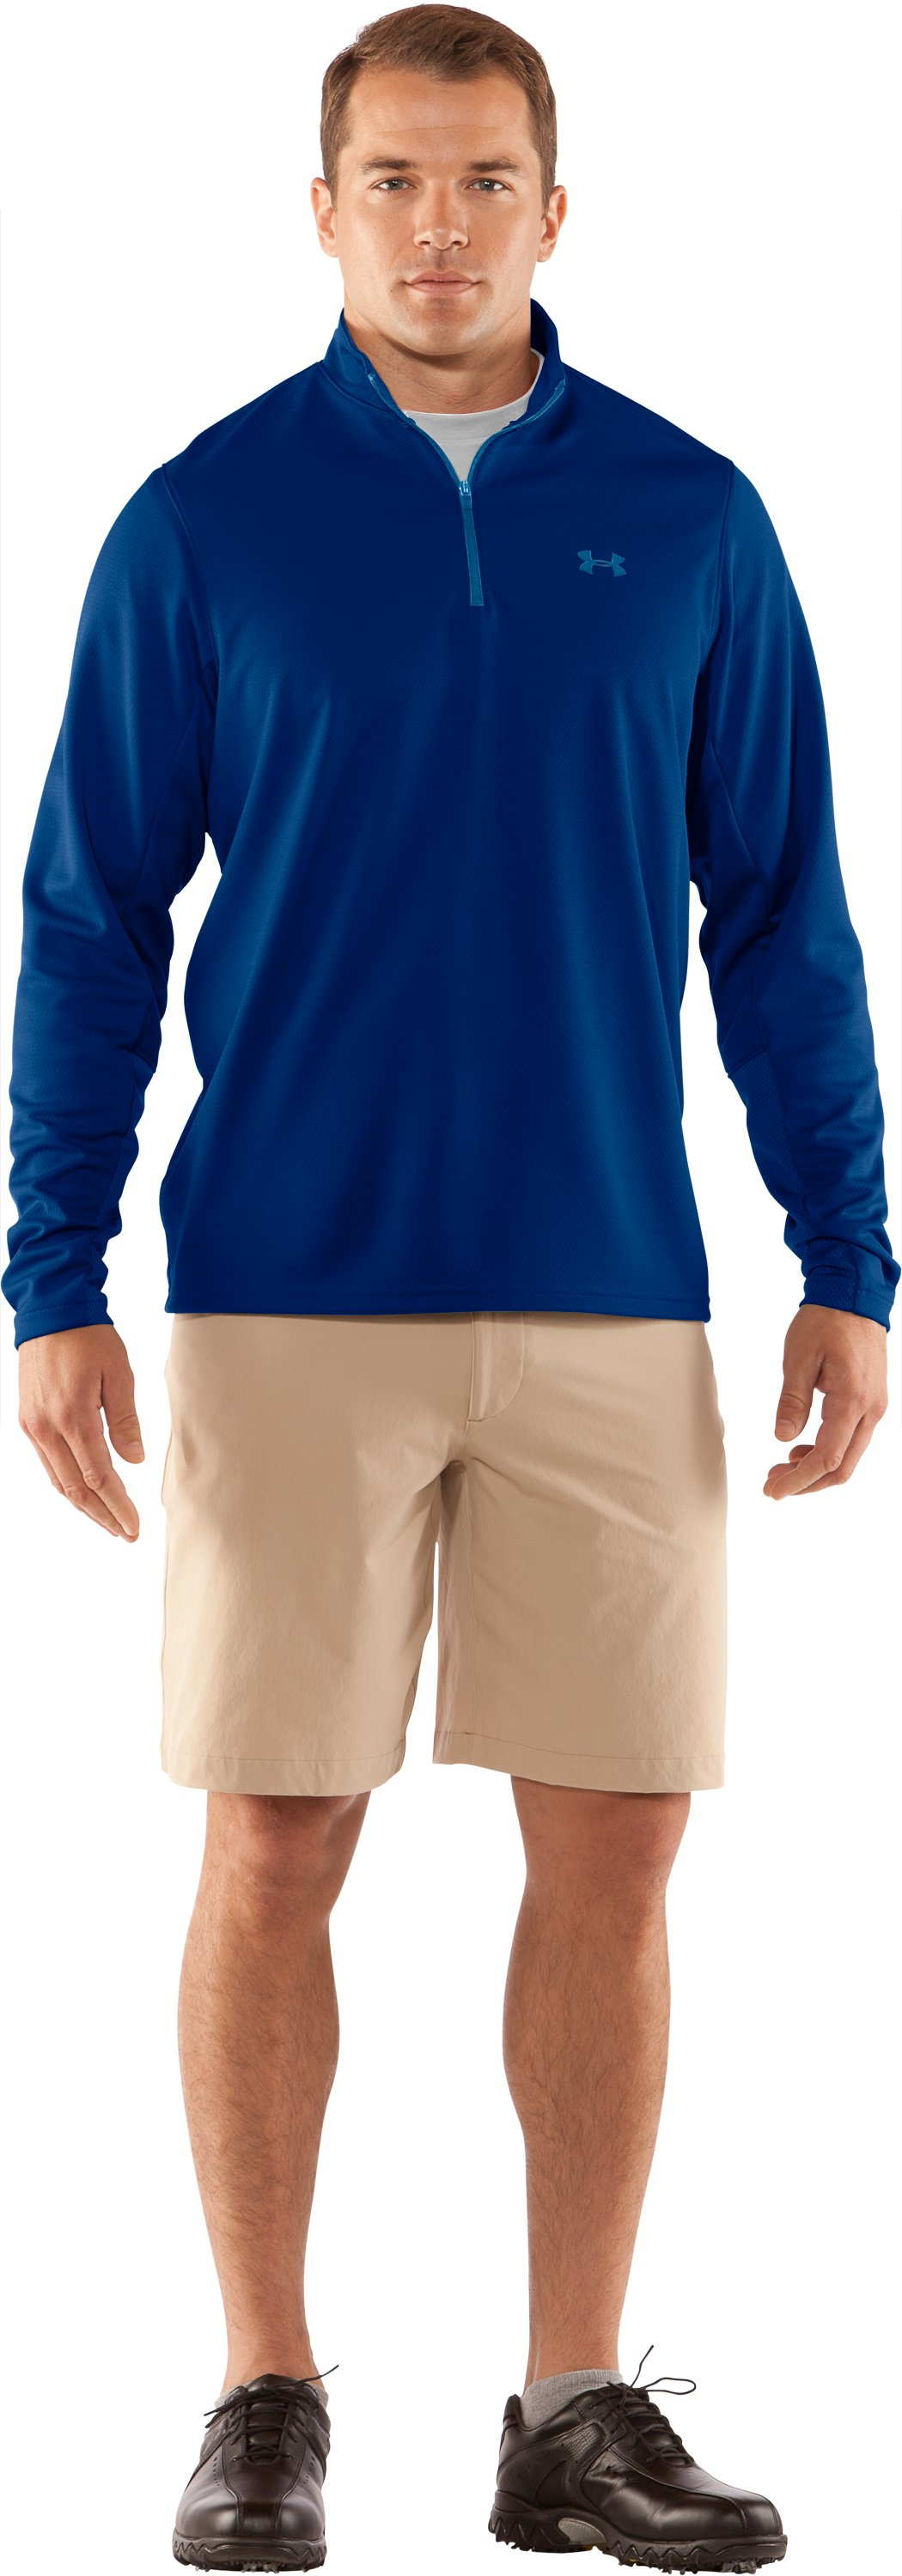 Men's AllSeasonGear® ¼ Zip Golf Jacket, EMPIRE BLUE